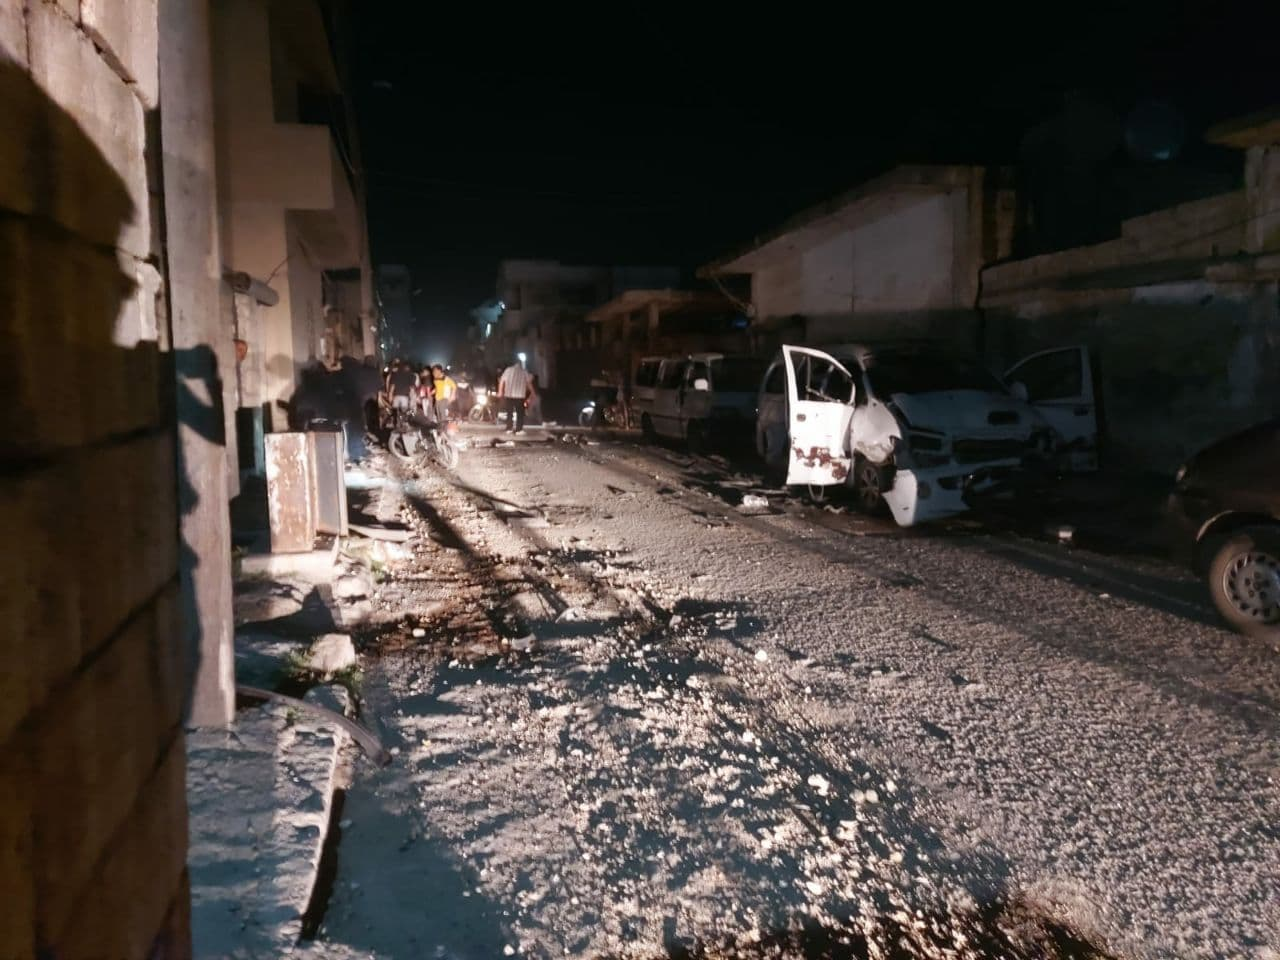 In Photos: Two Consecutive Explosions Hit Syria's Jarabulus, Child Reportedly Killed